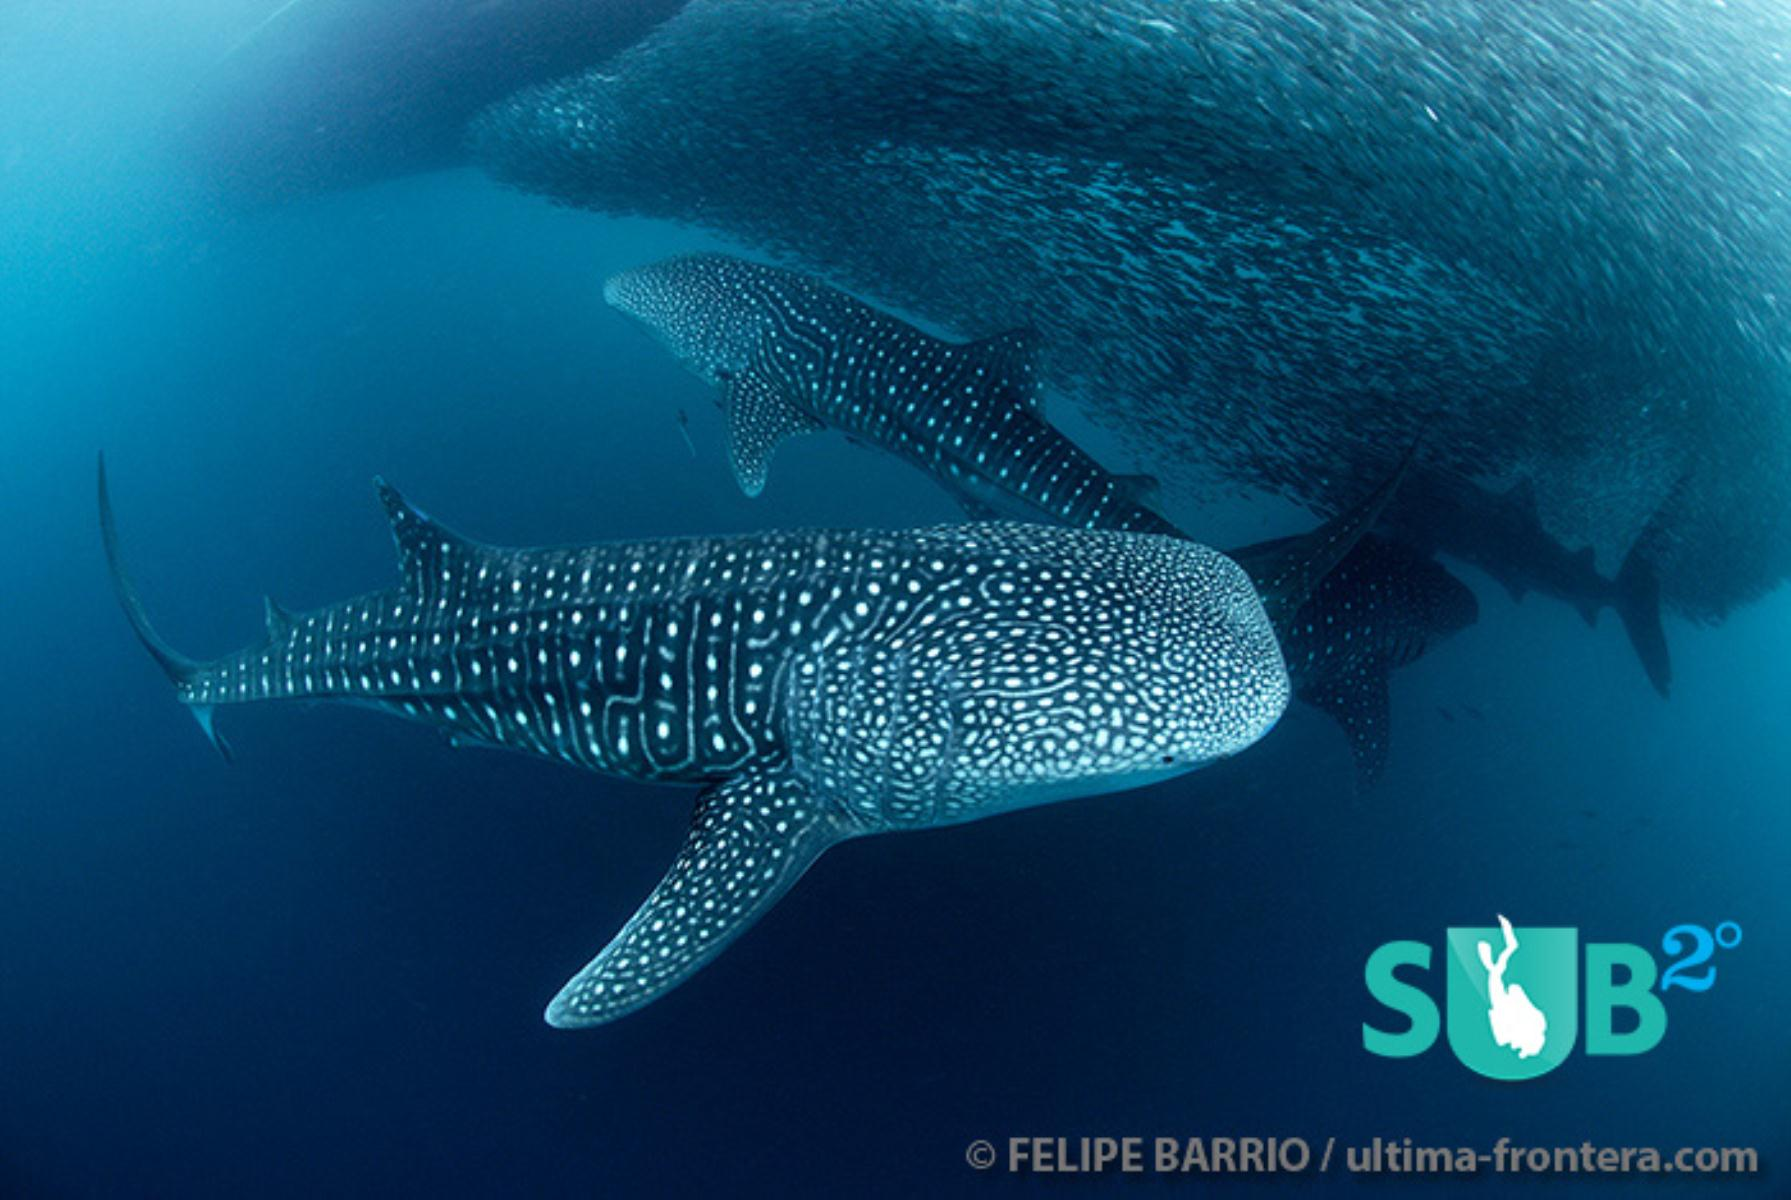 So beautiful to watch this gathering of whale sharks swimming gracefully